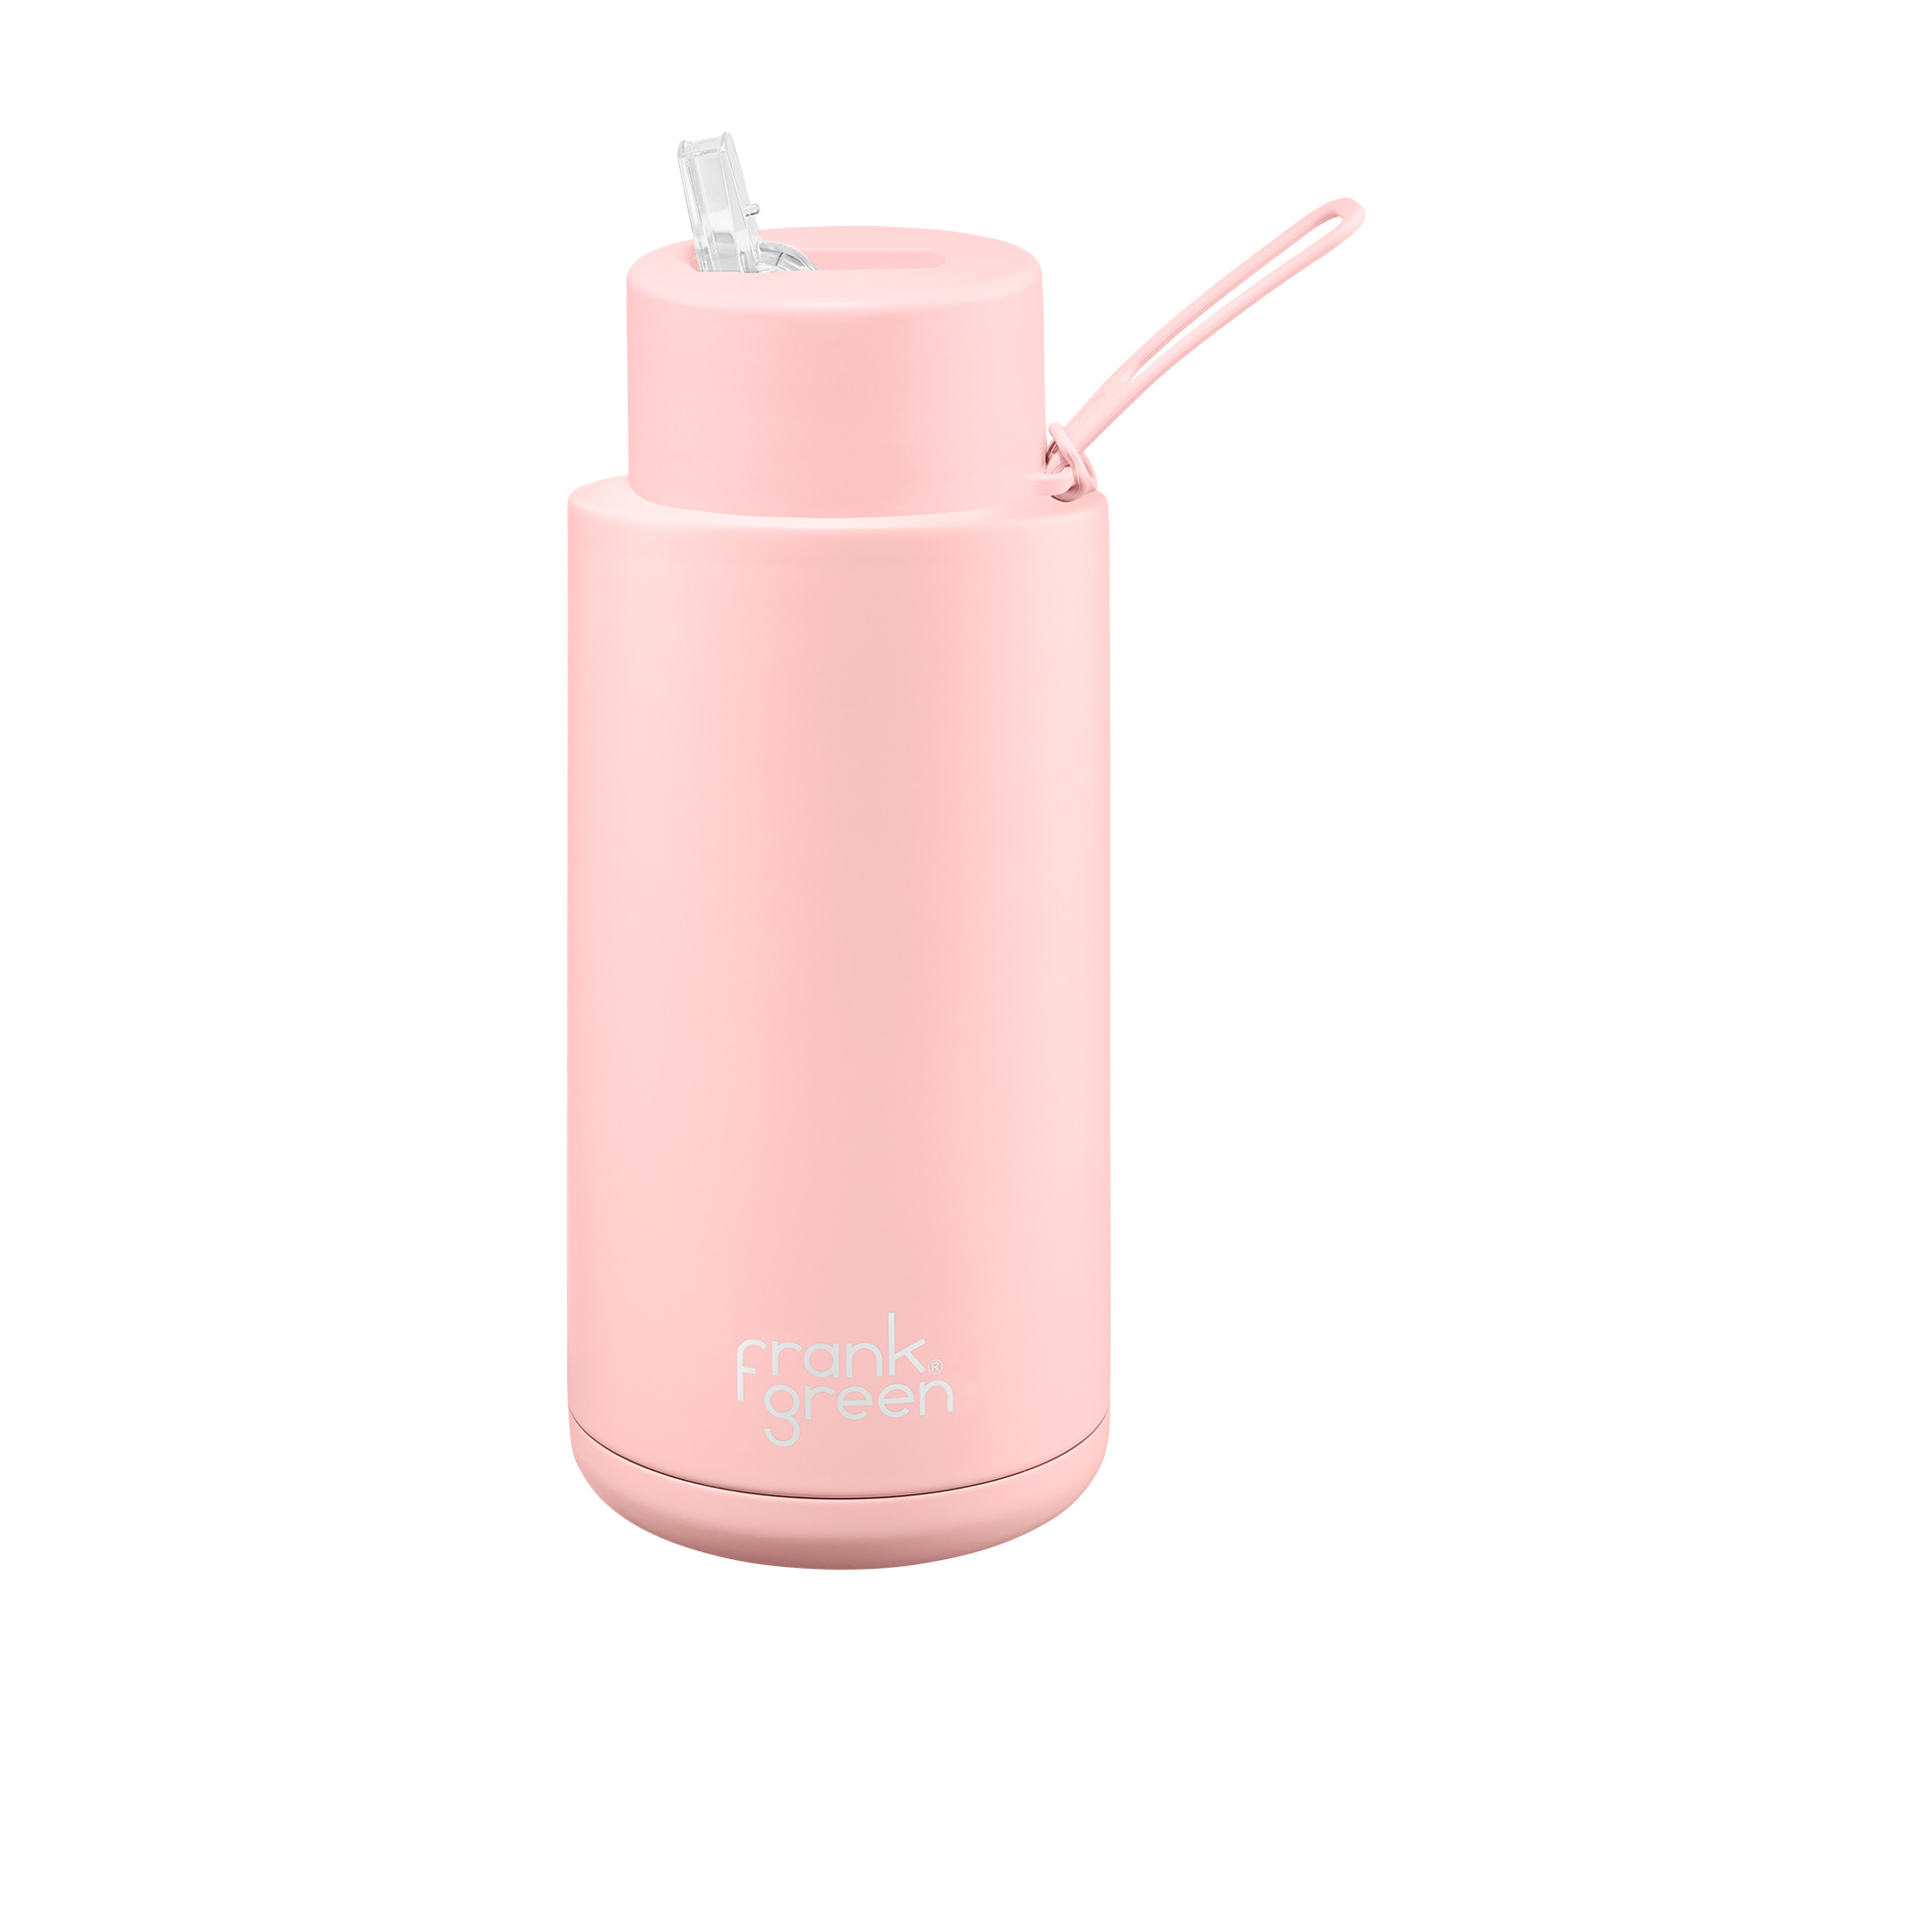 Frank Green Ultimate Ceramic Reusable Bottle with Straw 1L (34oz) Blushed